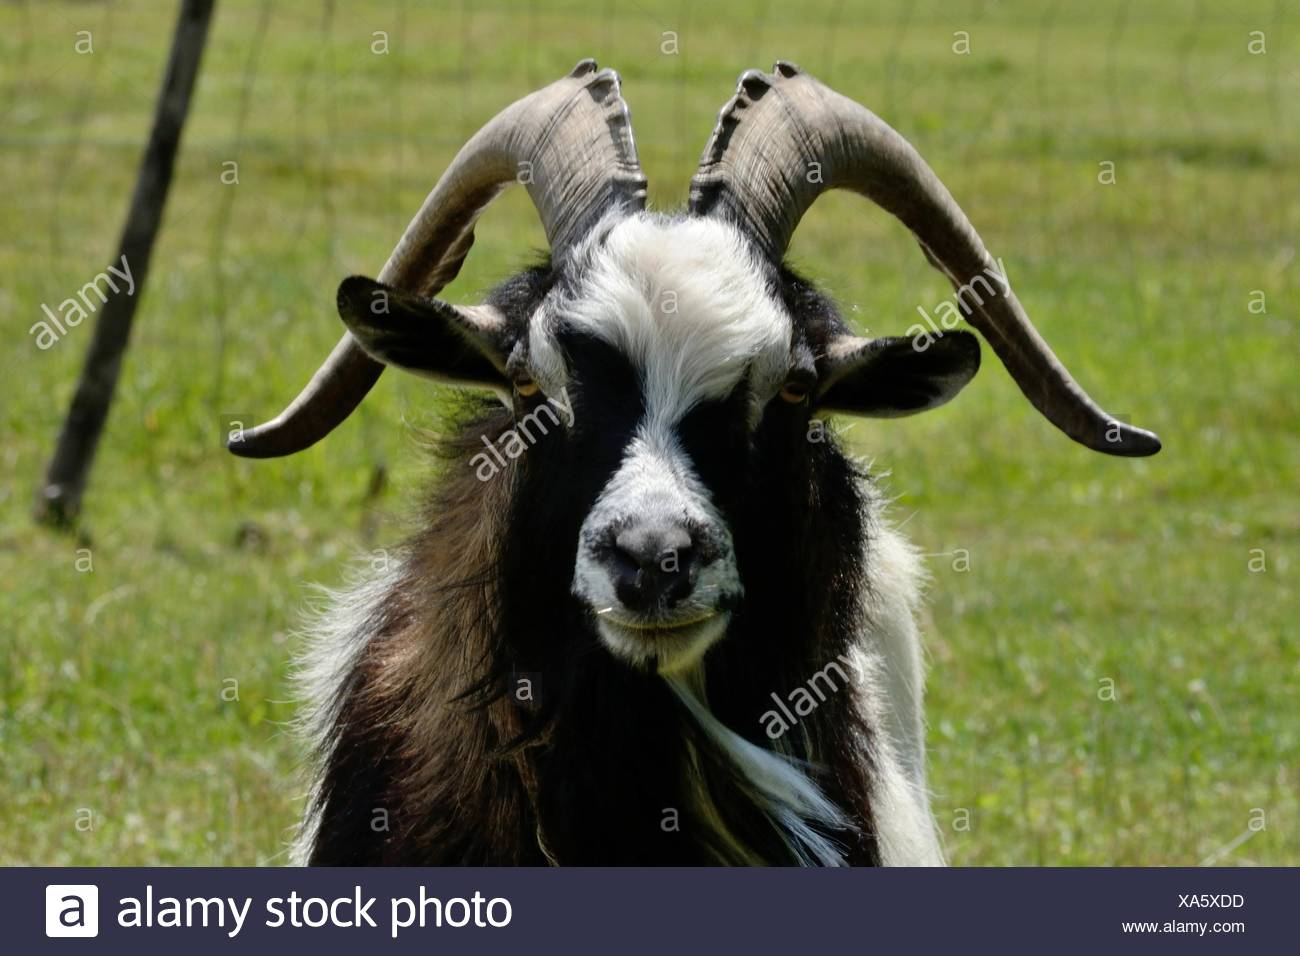 Aries imposing front of the camera - Stock Image